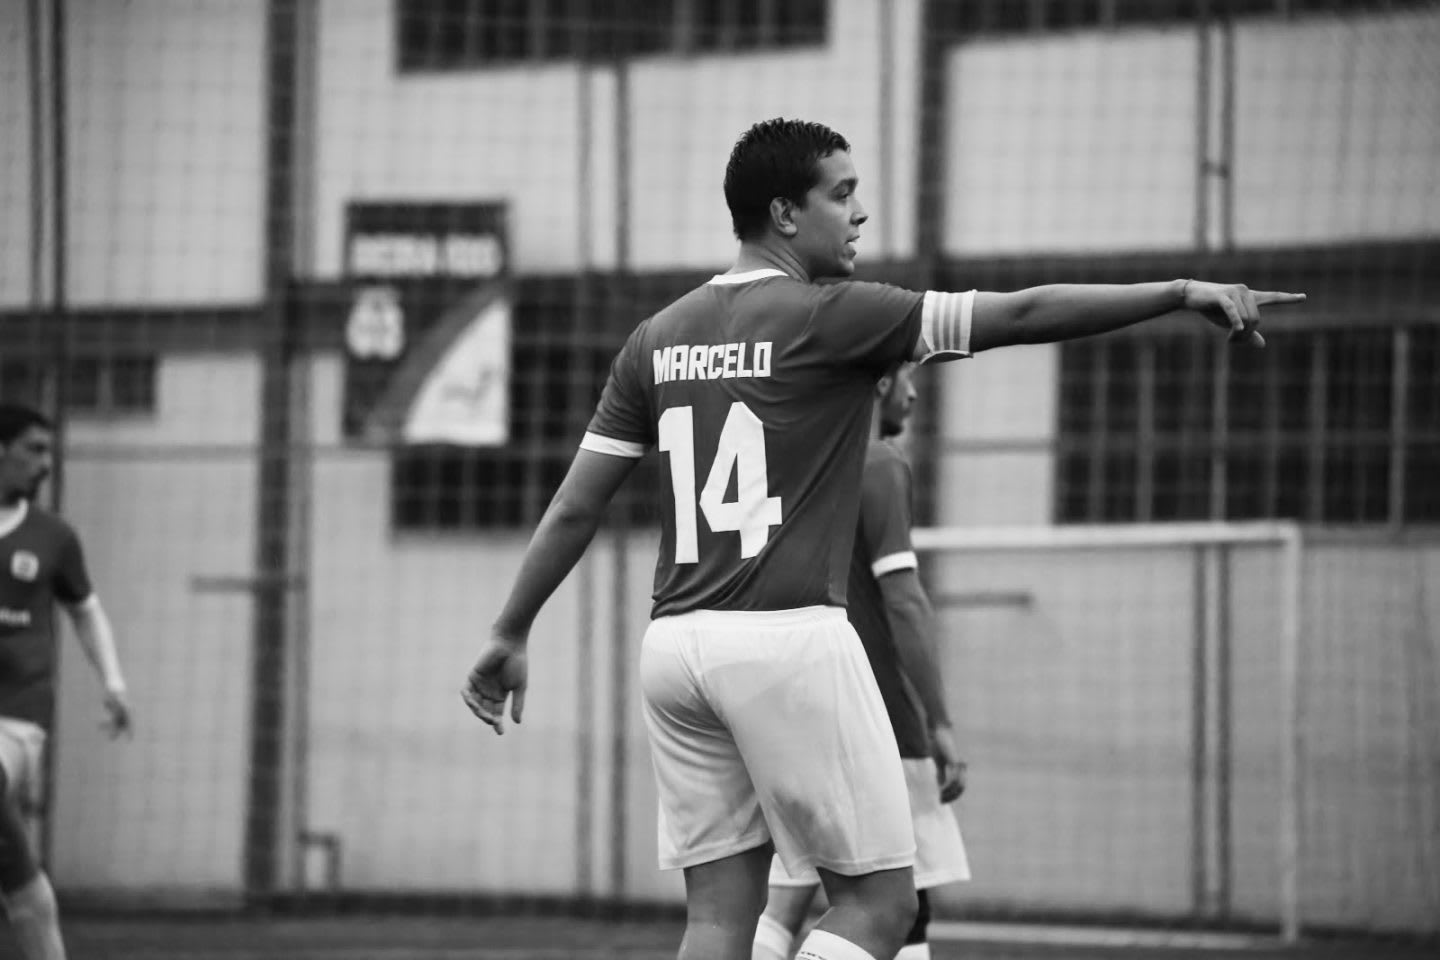 Marcelo Leite during an indoor soccer game pointing at something | Fear of change